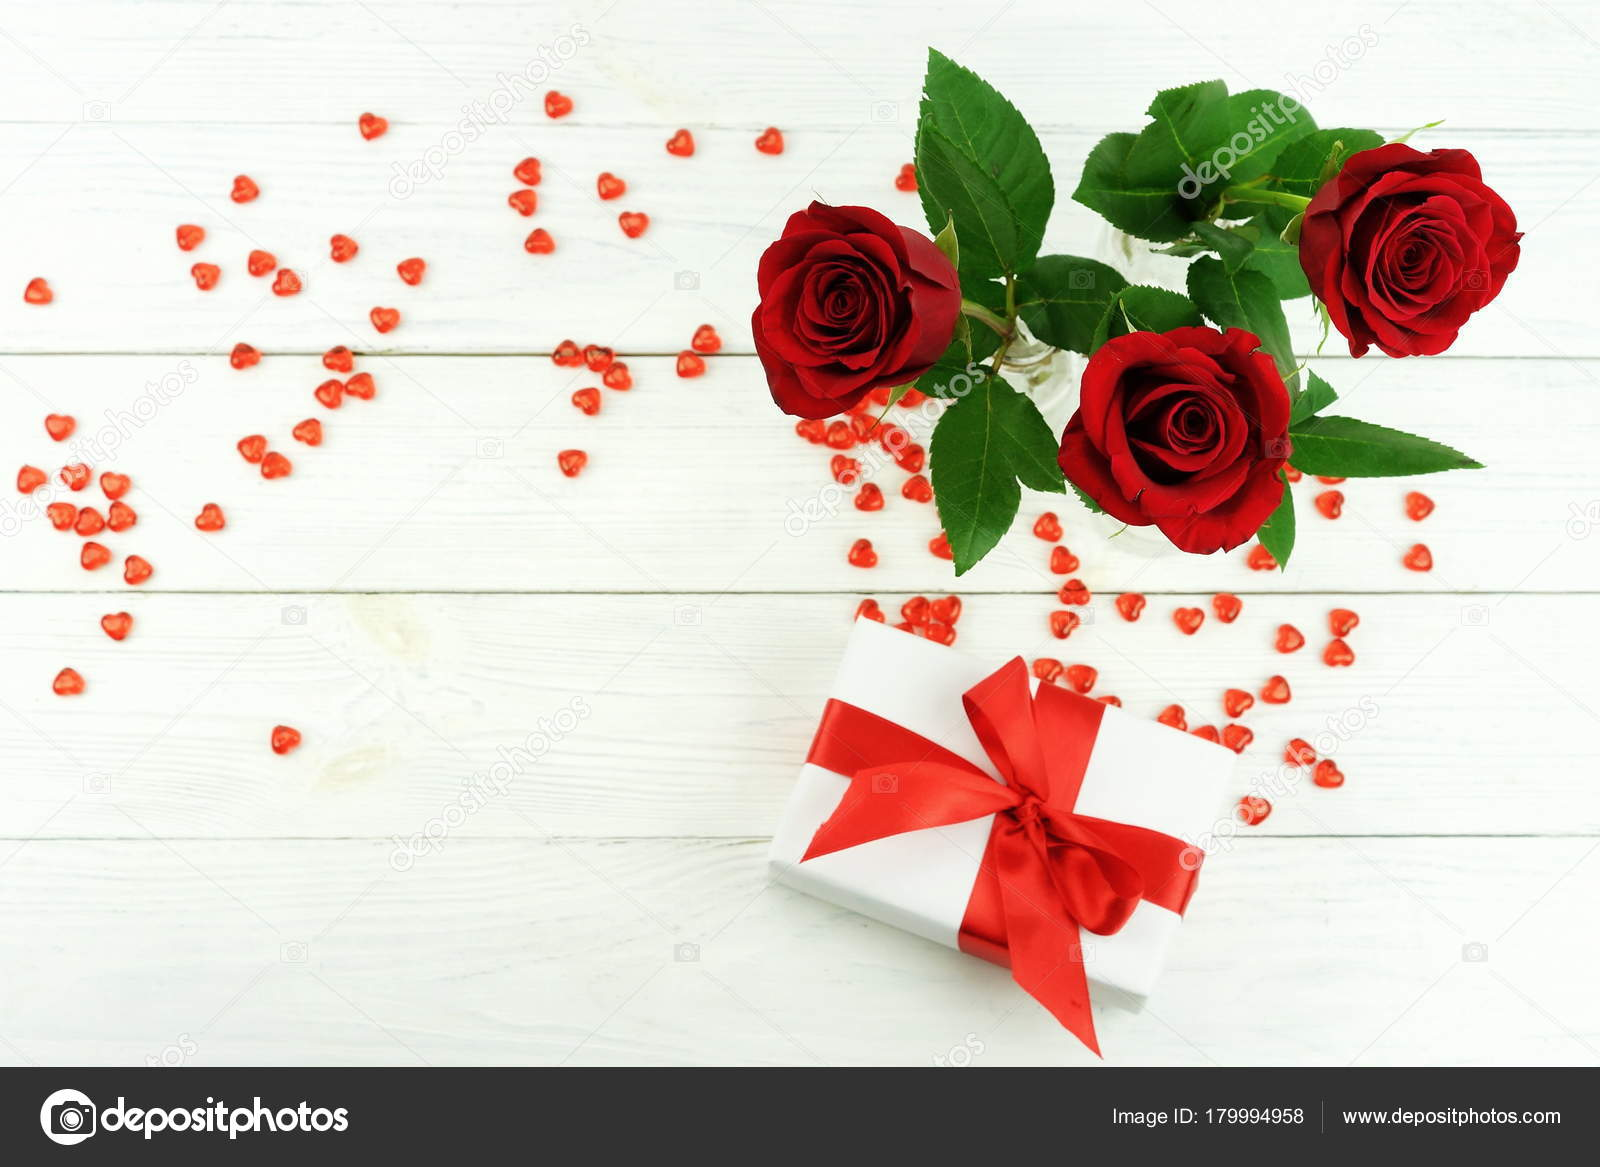 Valentine day bouquet beautiful red roses vase white wooden valentine day bouquet beautiful red roses vase white wooden background stock photo izmirmasajfo